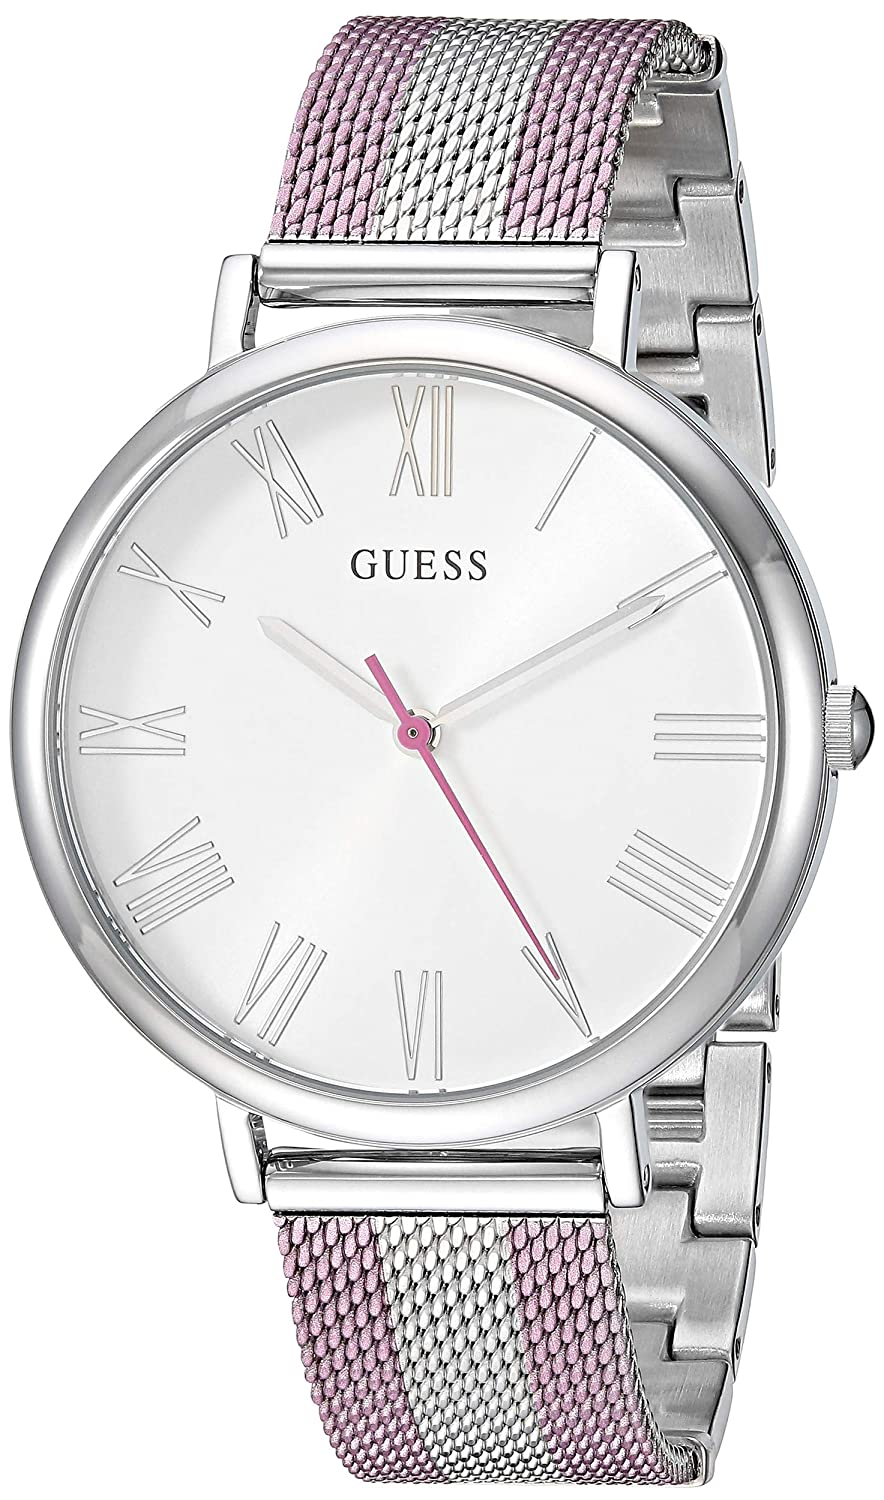 CDM product GUESS Women's Quartz Watch with Stainless-Steel Strap, Silver, 20 (Model: U1155L5 big image